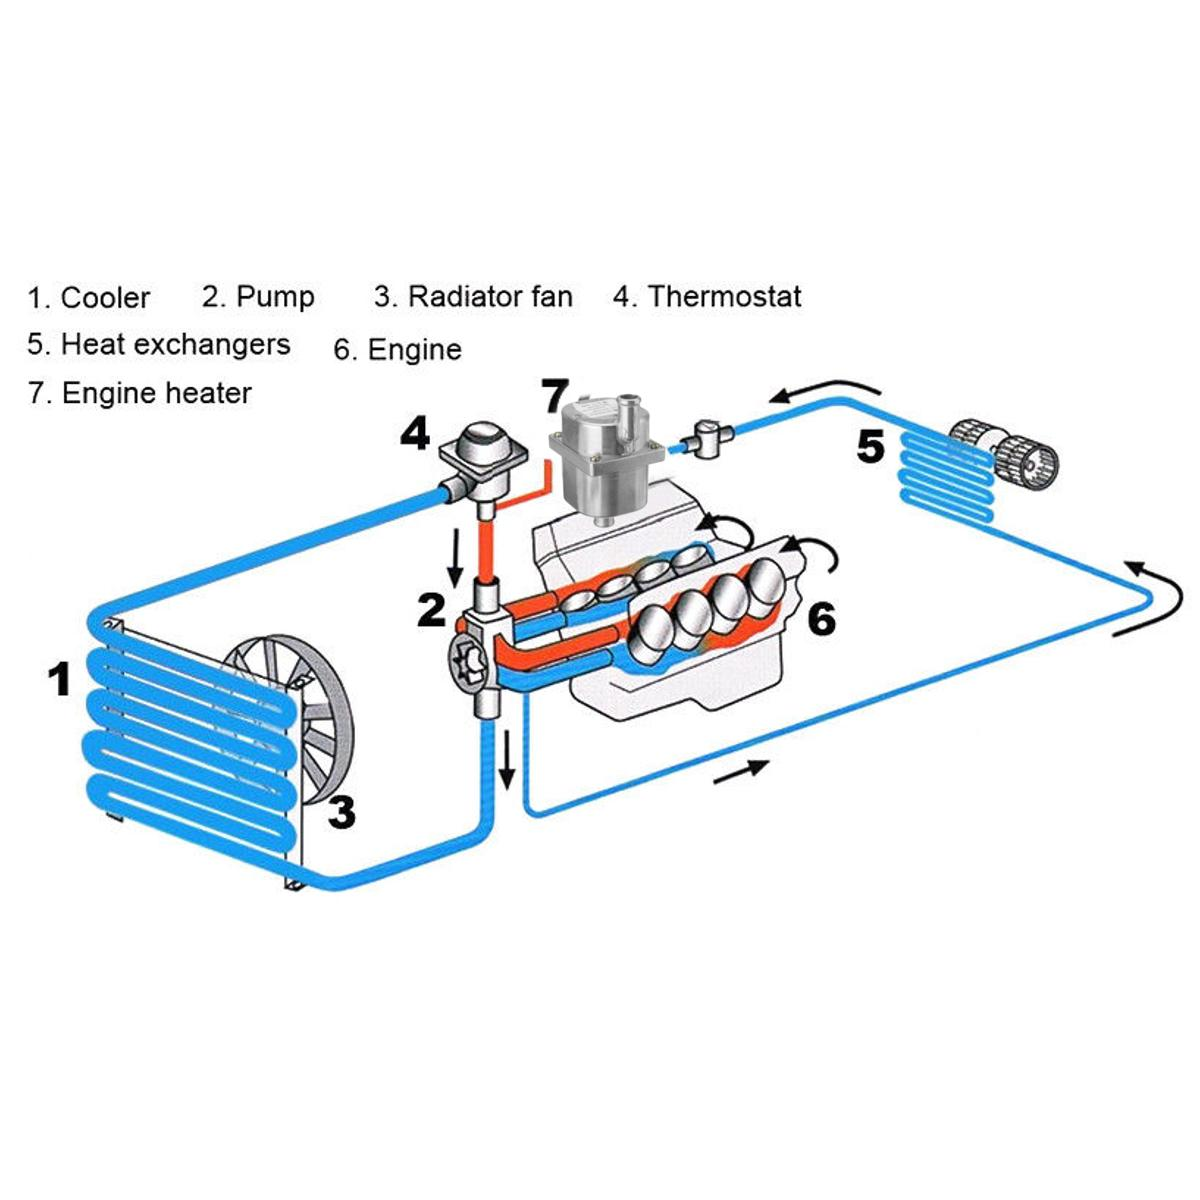 3000w car engine coolant heater preheater not w ebasto eberspacher motor heating preheating air parking heater in heating fans from automobiles  [ 1200 x 1200 Pixel ]